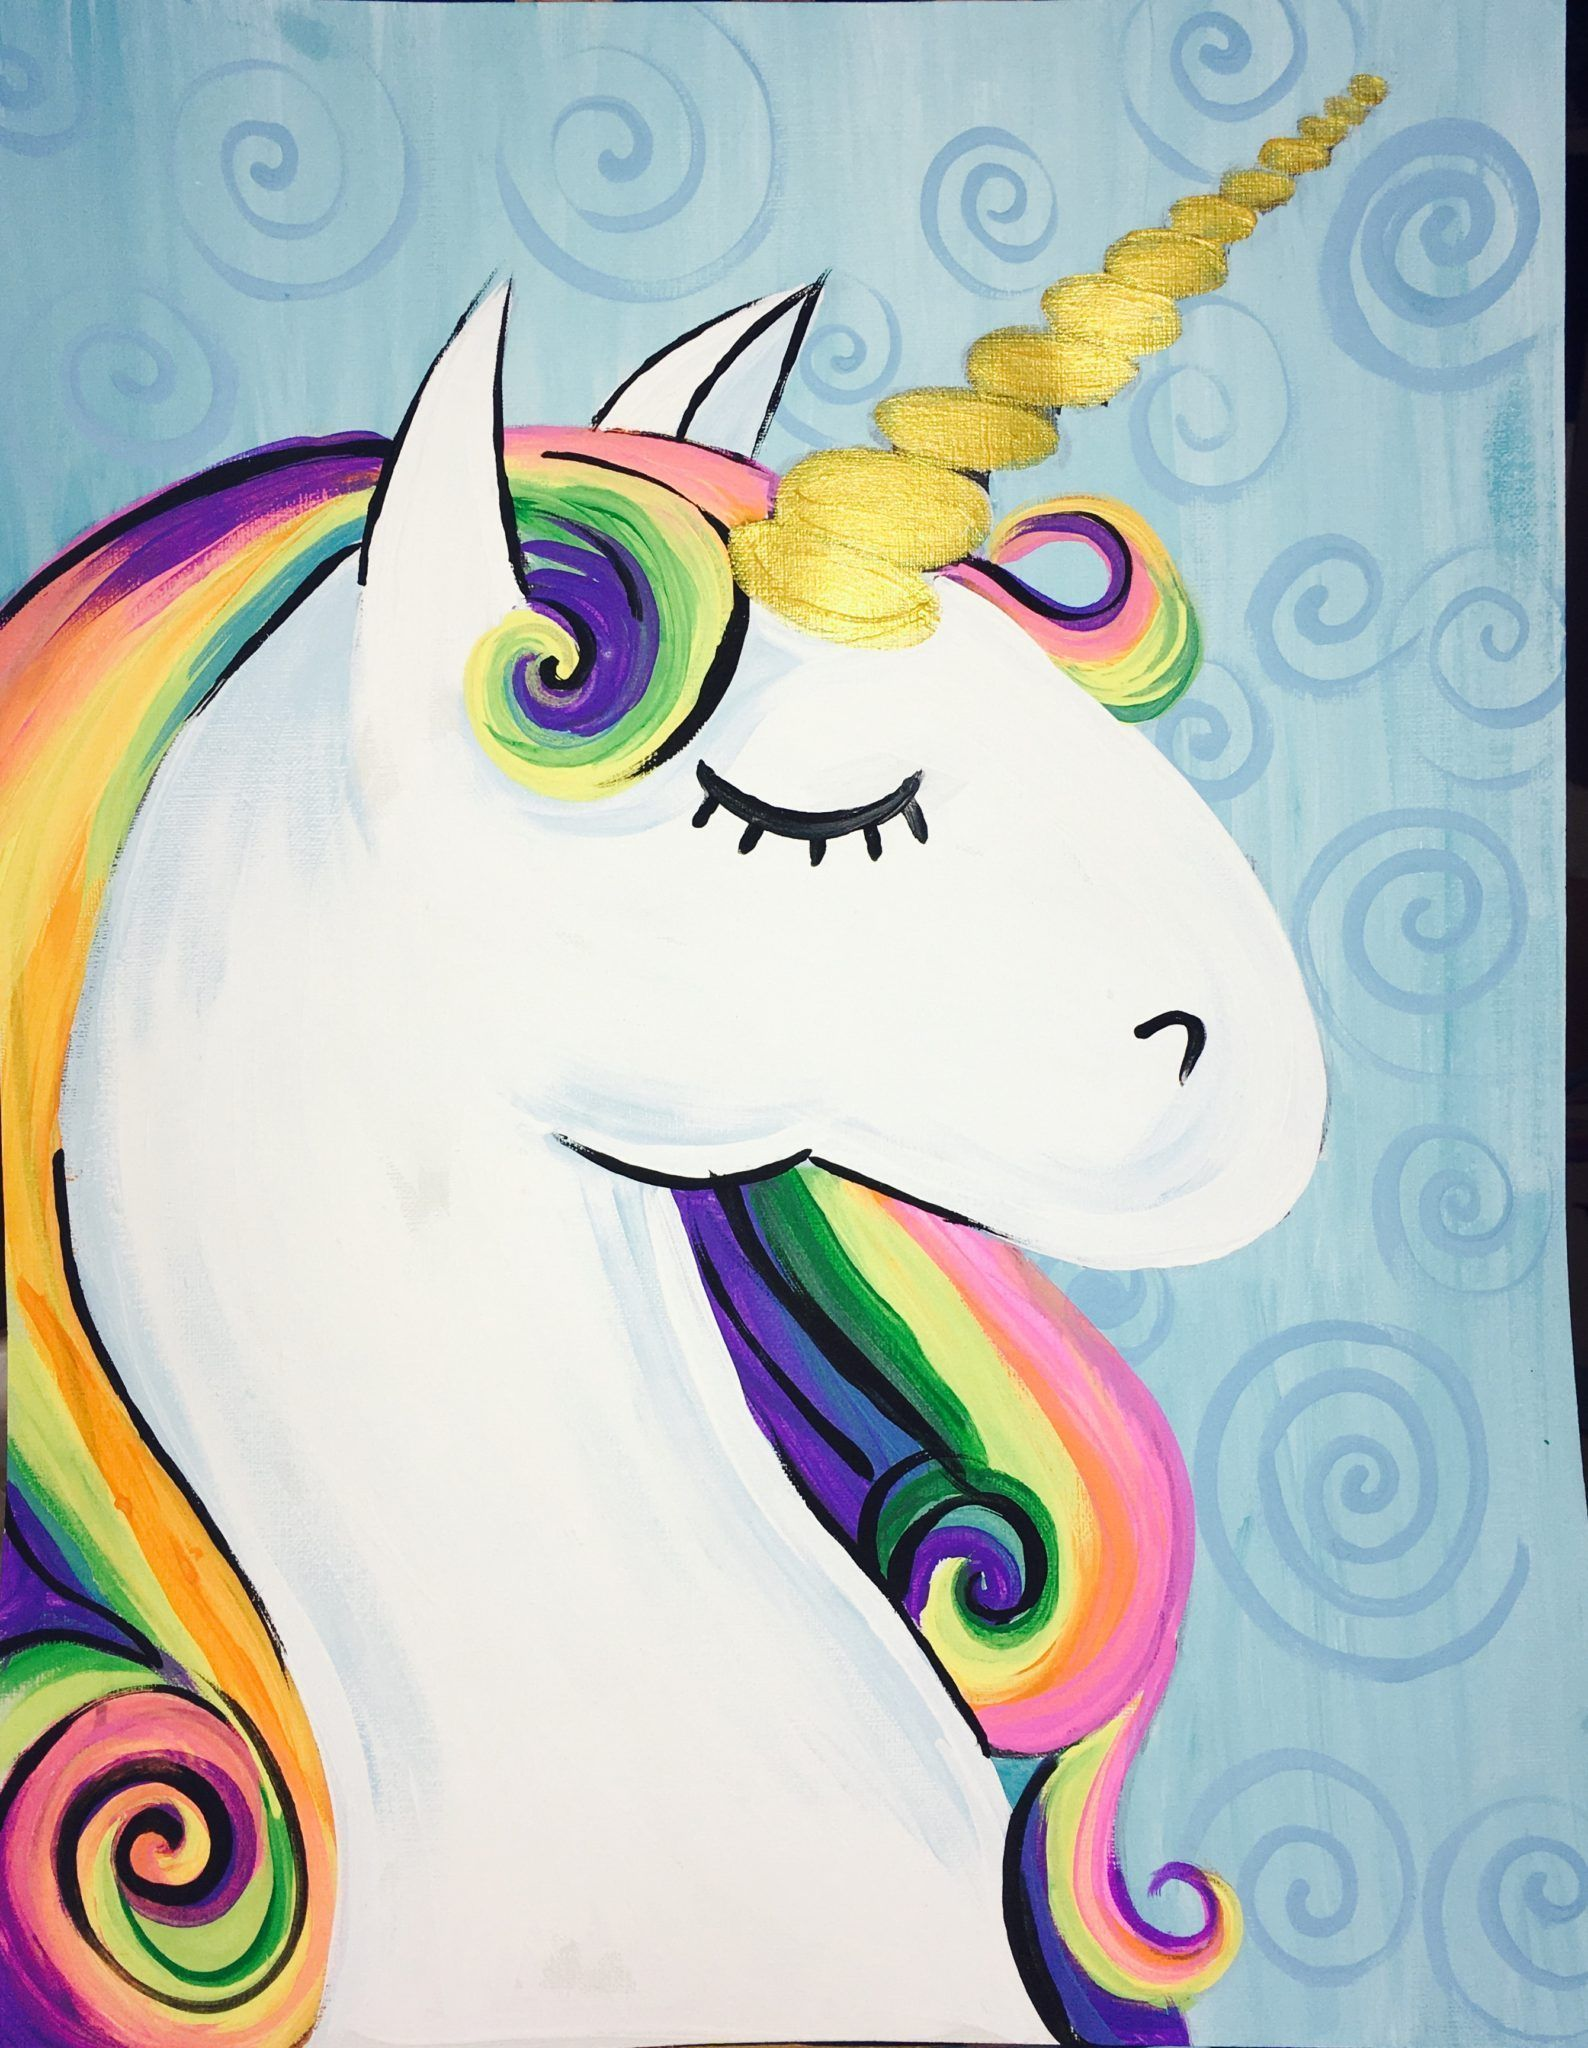 How To Paint A Rainbow Unicorn  Easy is part of Unicorn drawing, Unicorn painting, Canvas painting designs, Rainbow unicorn, Rainbow painting, Easy canvas painting - Learn how to paint this rainbow unicorn with acrylic paint on canvas! This is an easy beginner painting tutorial with a traceable and full video!